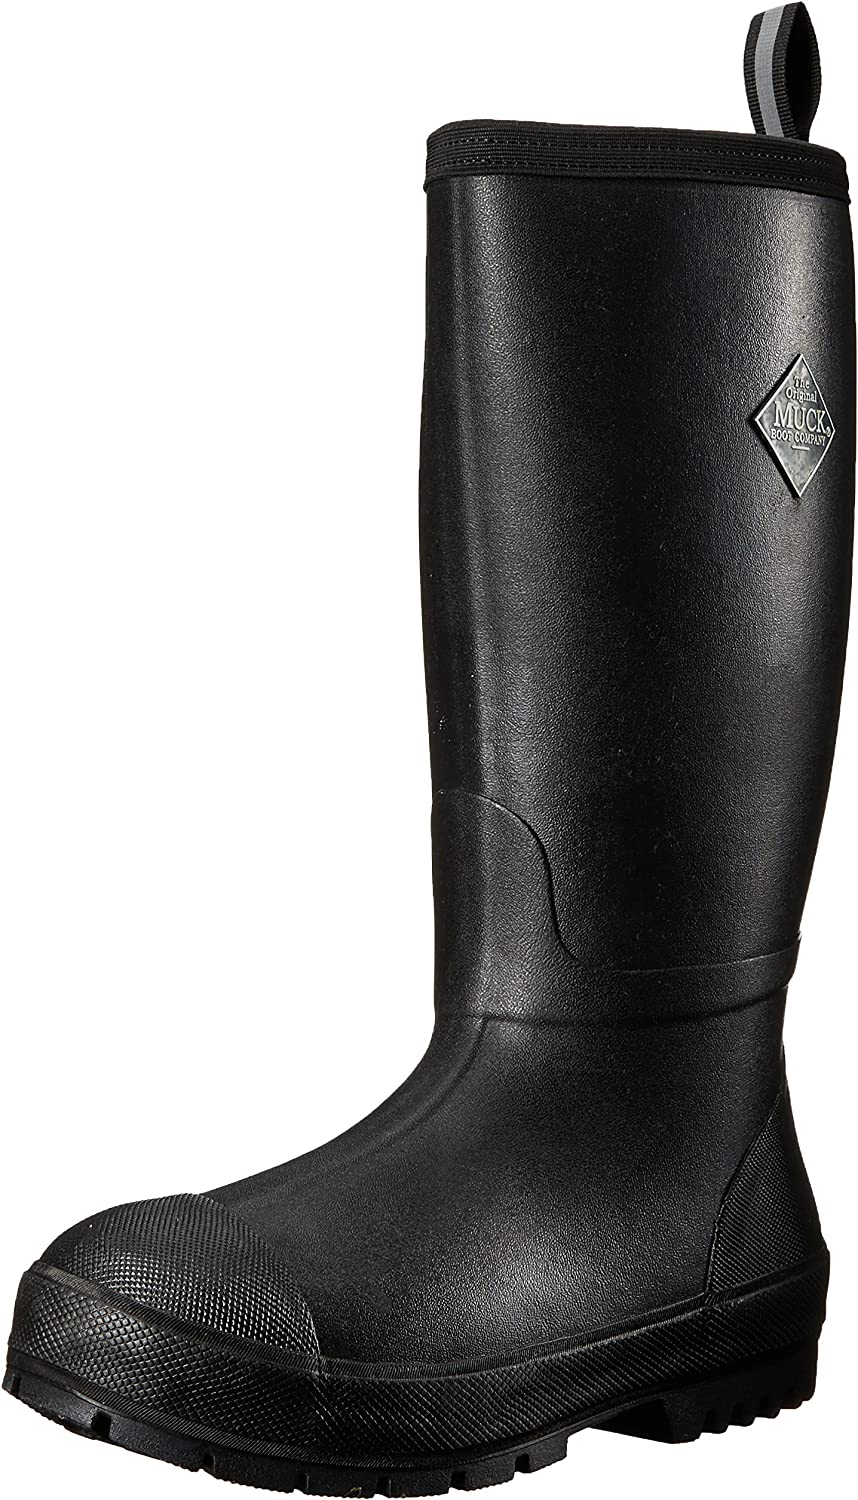 Muck Boot Mens Chore Resistant Tall Work Boot